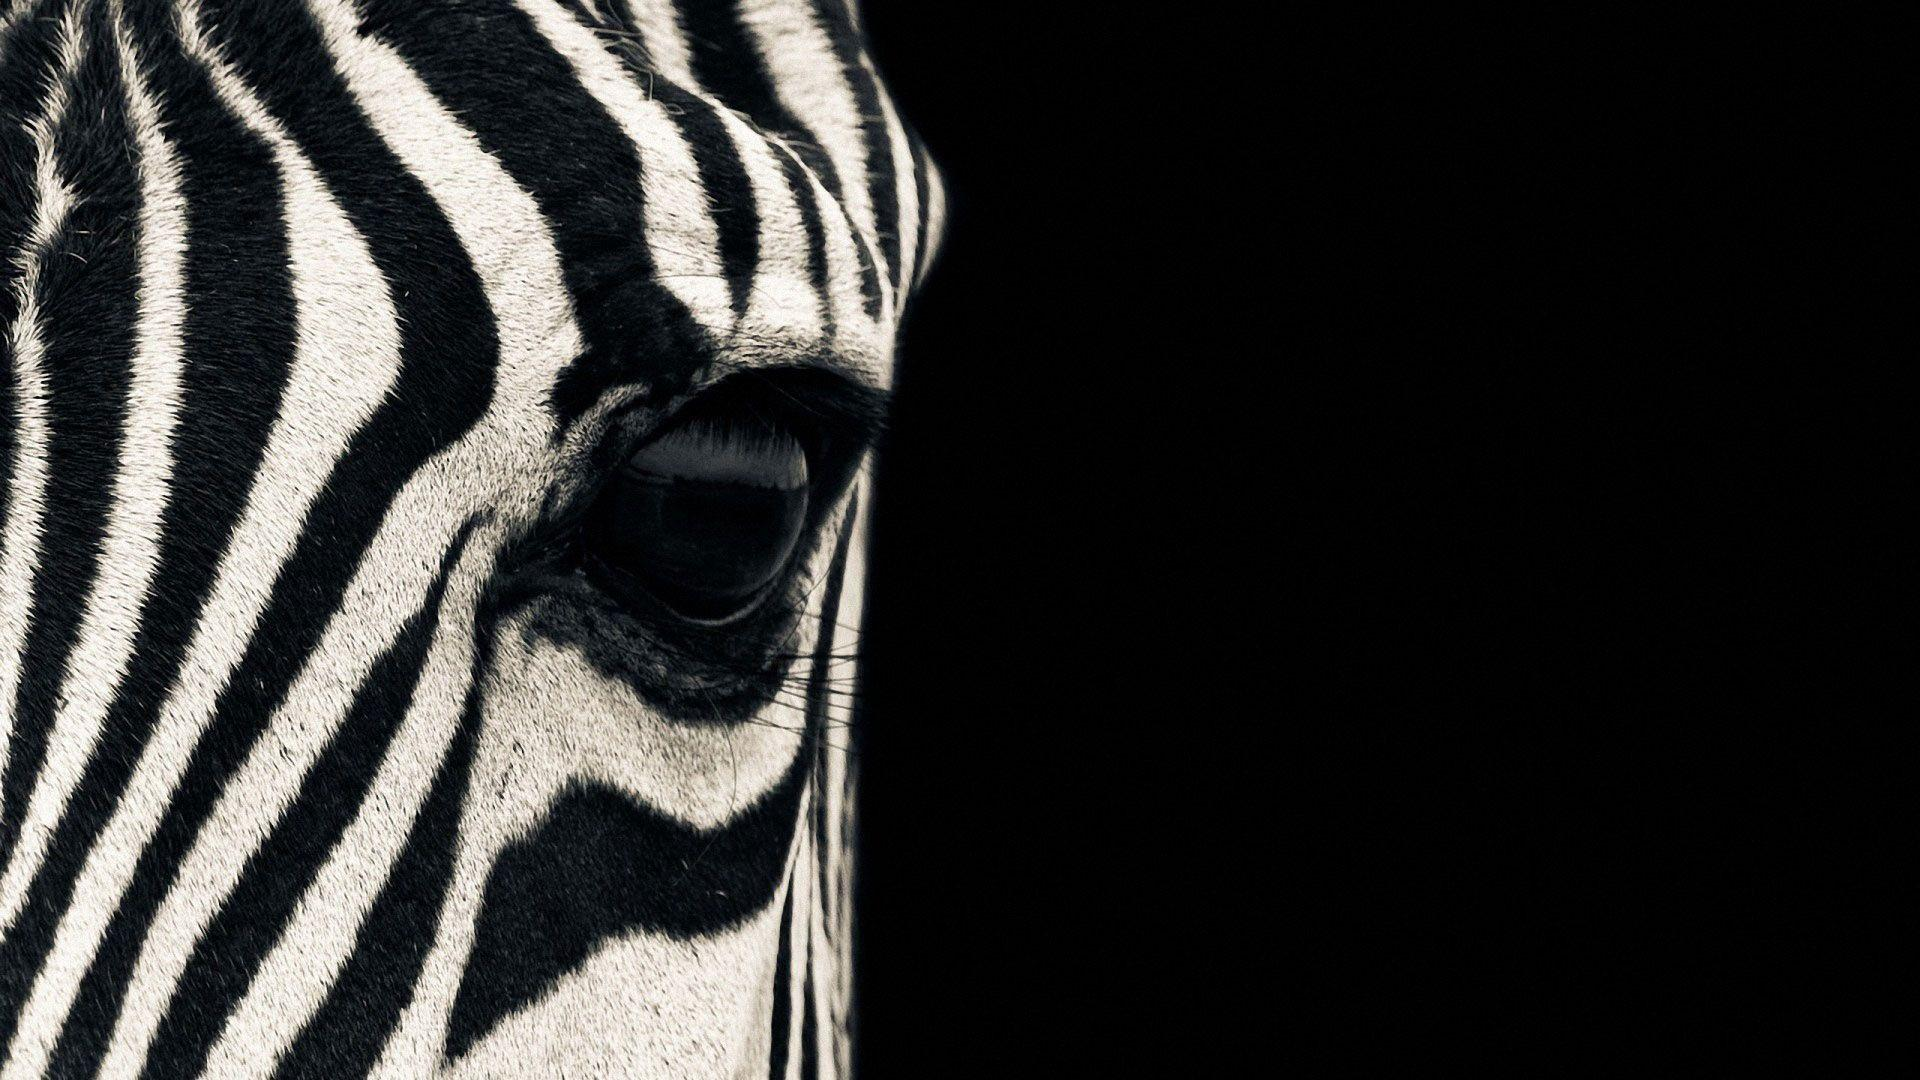 hd pics photos beautiful zebra face close up macro wild animals hd